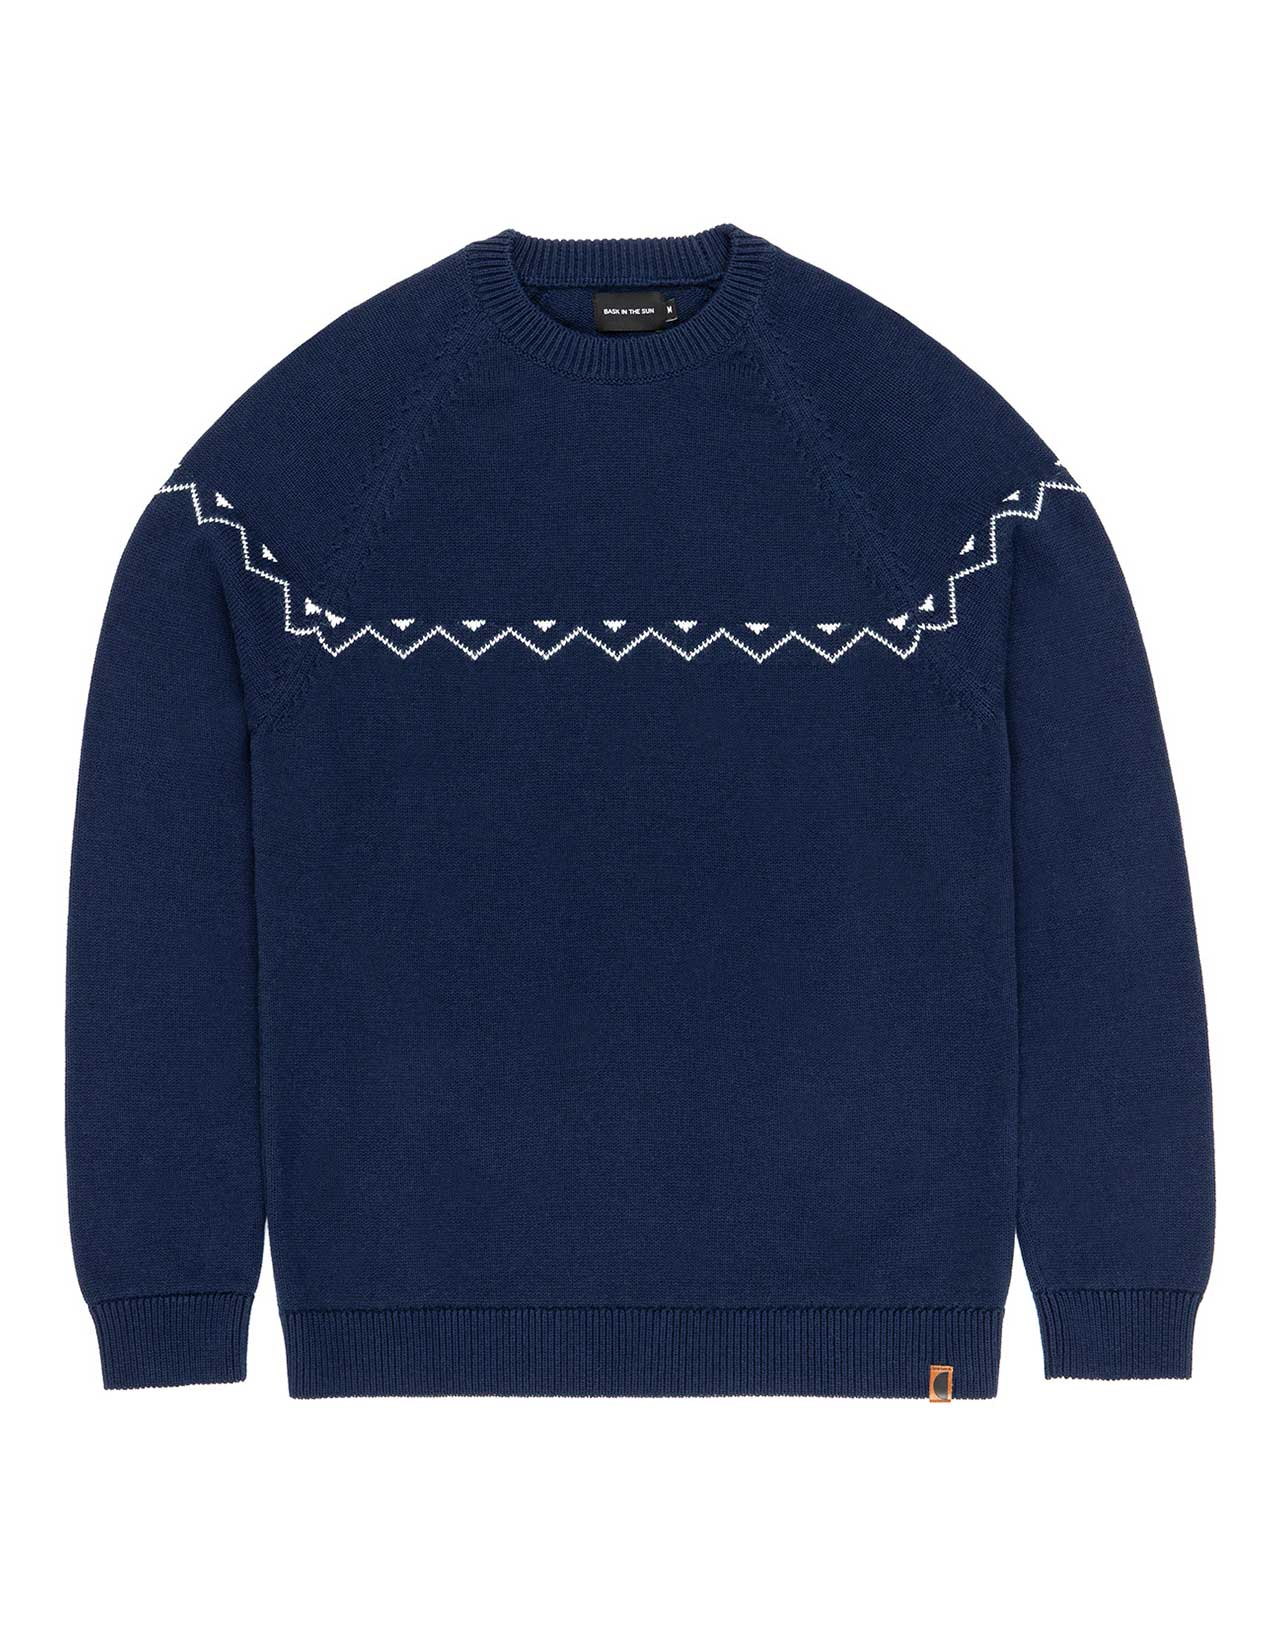 pull en maill navy detail zigzag blanc Ibon Bask in the sun